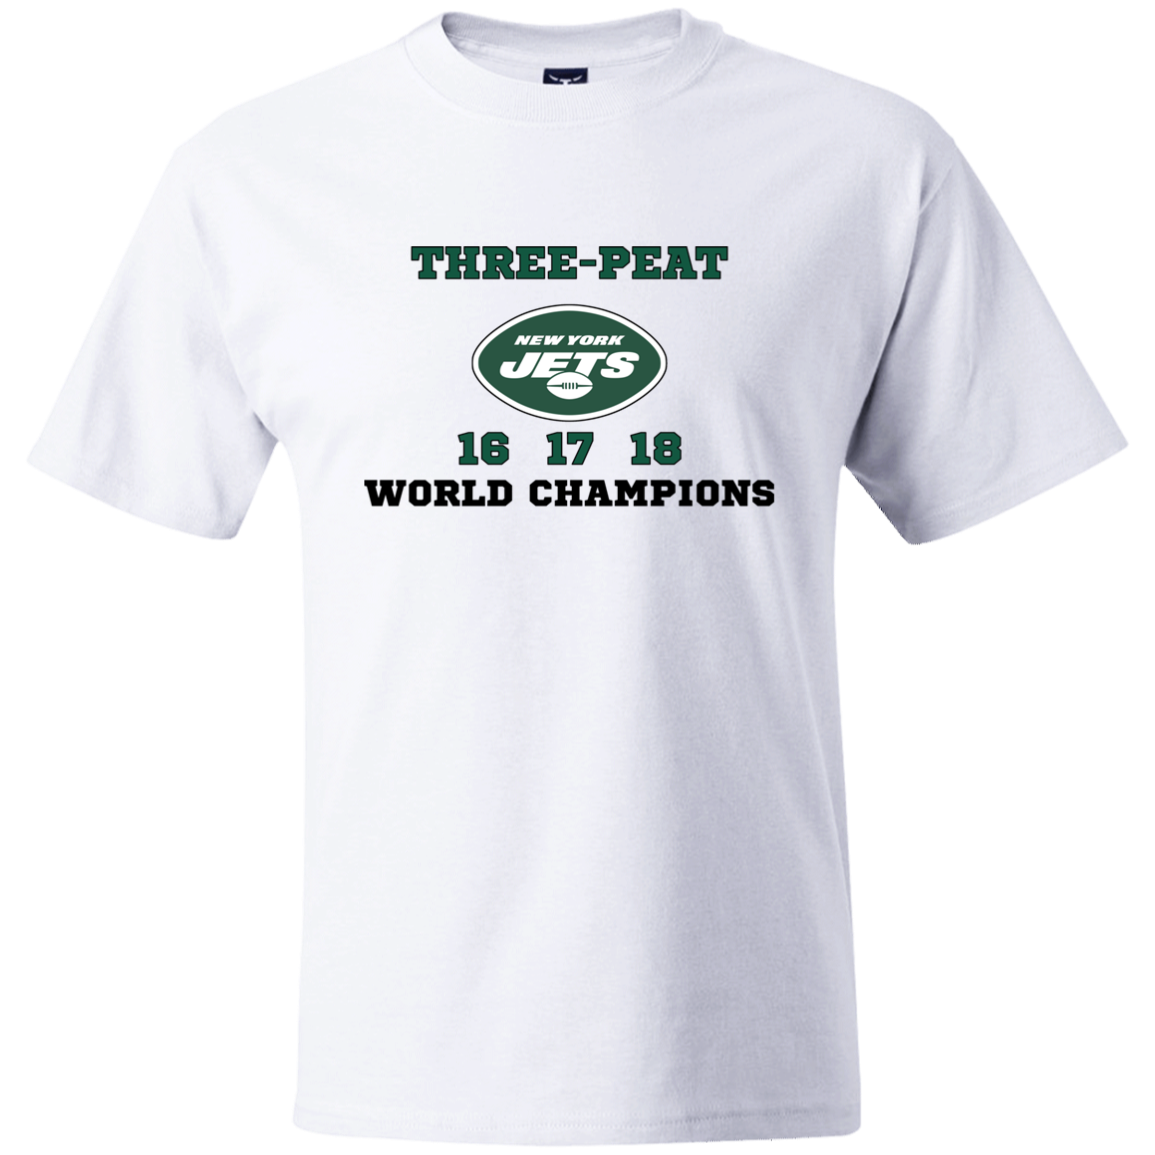 Three-Peat